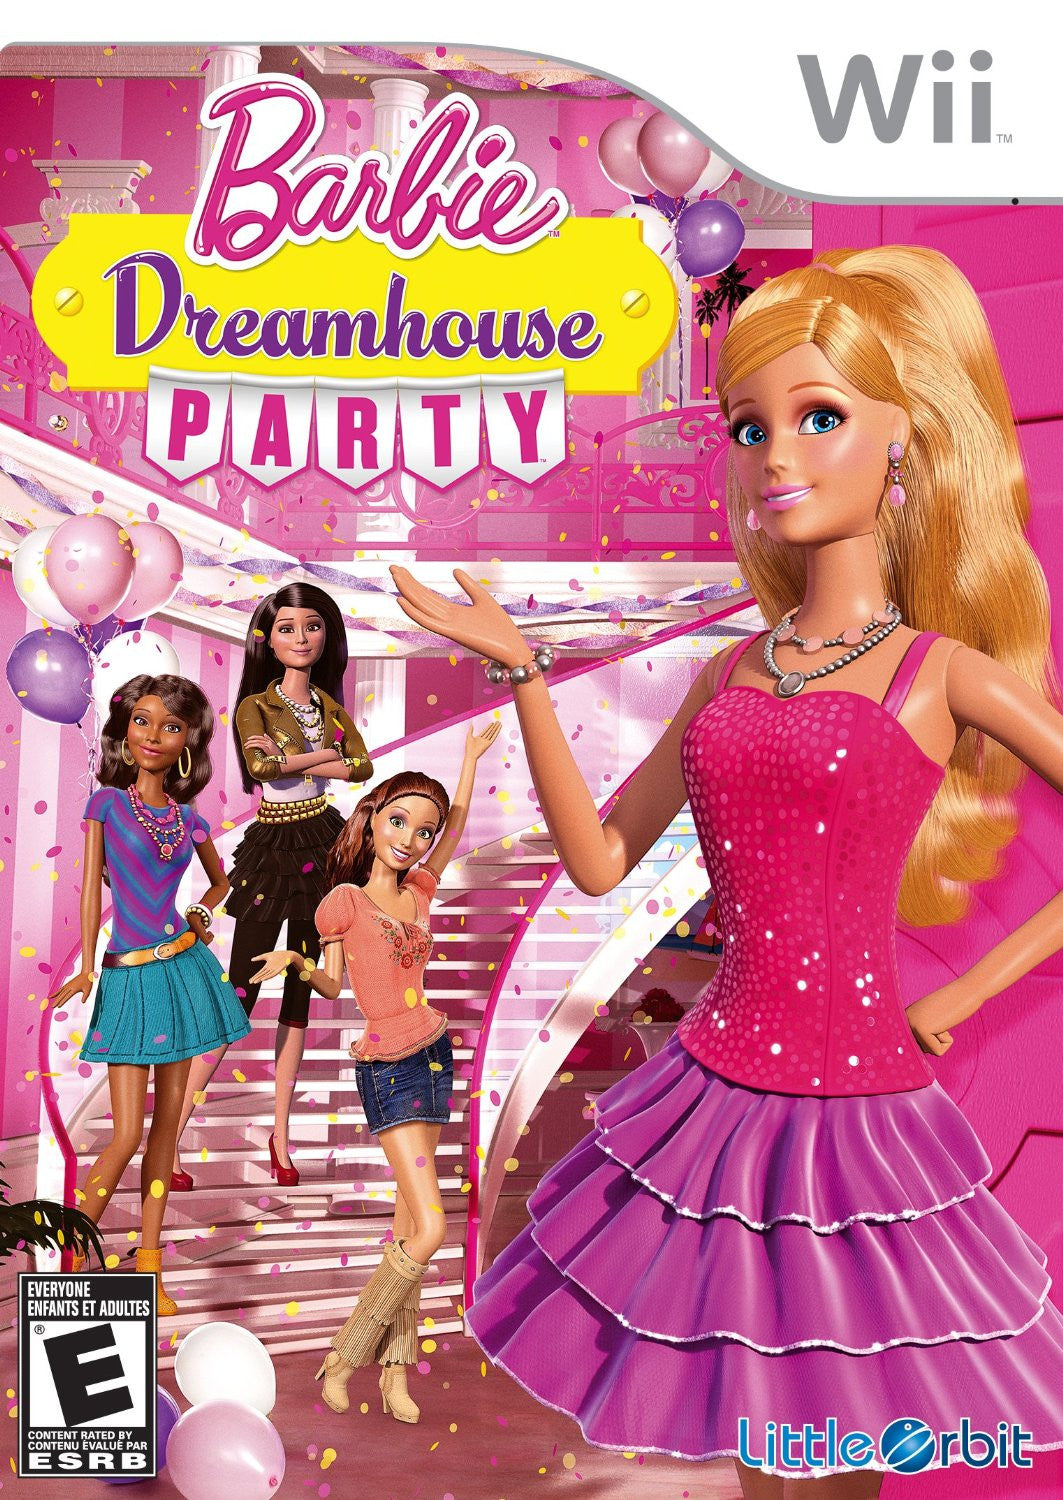 Wii Barbie Dreamhouse Party / US (English)